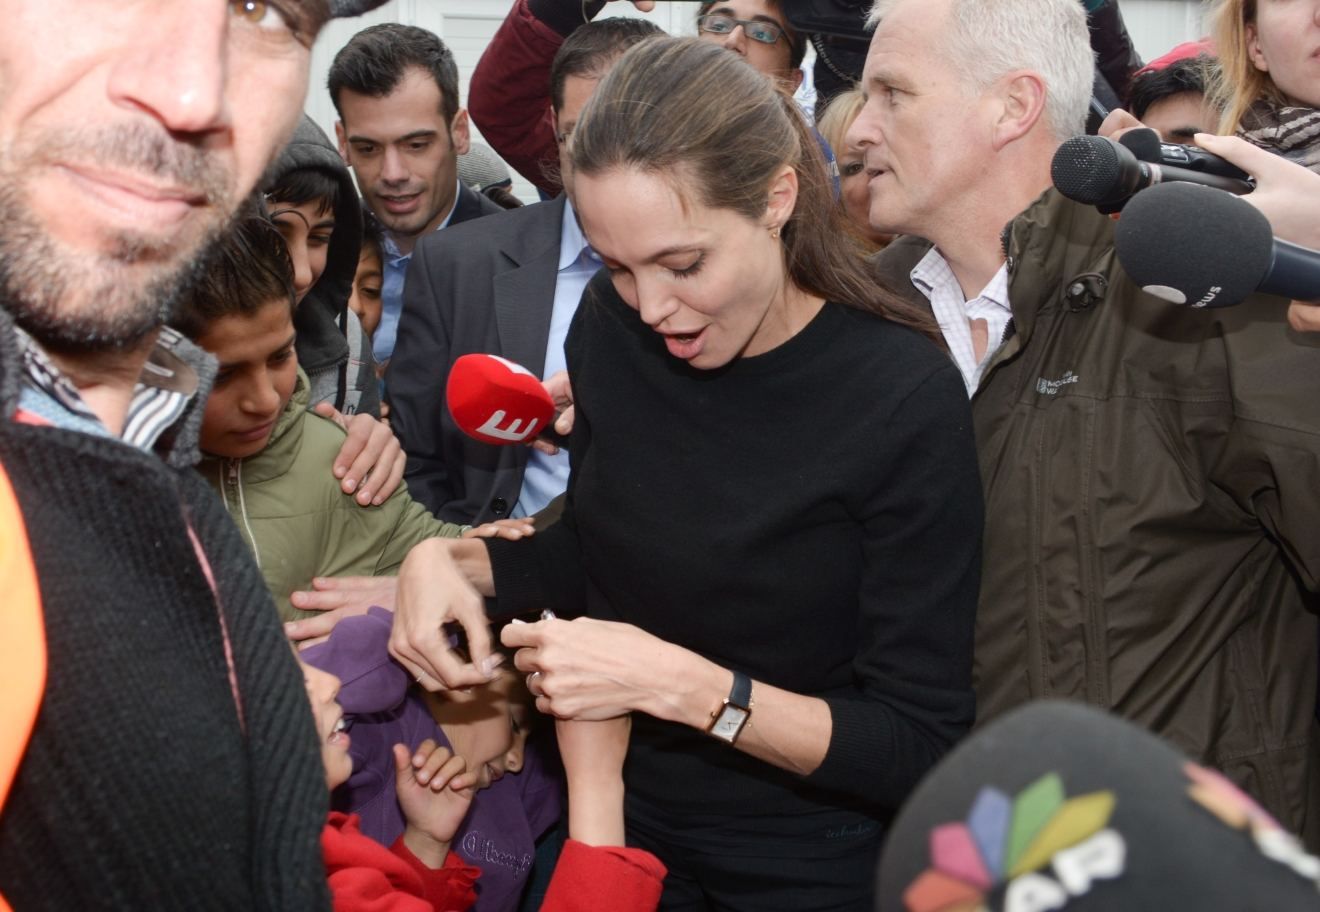 U.N. Goodwill Ambassador Angelina Jolie visits Piraeus to speak to refugees during her visit to Greece  Featuring: Angelina Jolie Where: Athens, Greece When: 16 Mar 2016 Credit: Papadakis Press/WENN.com  **Not available for Publication in Greece, Cyprus**